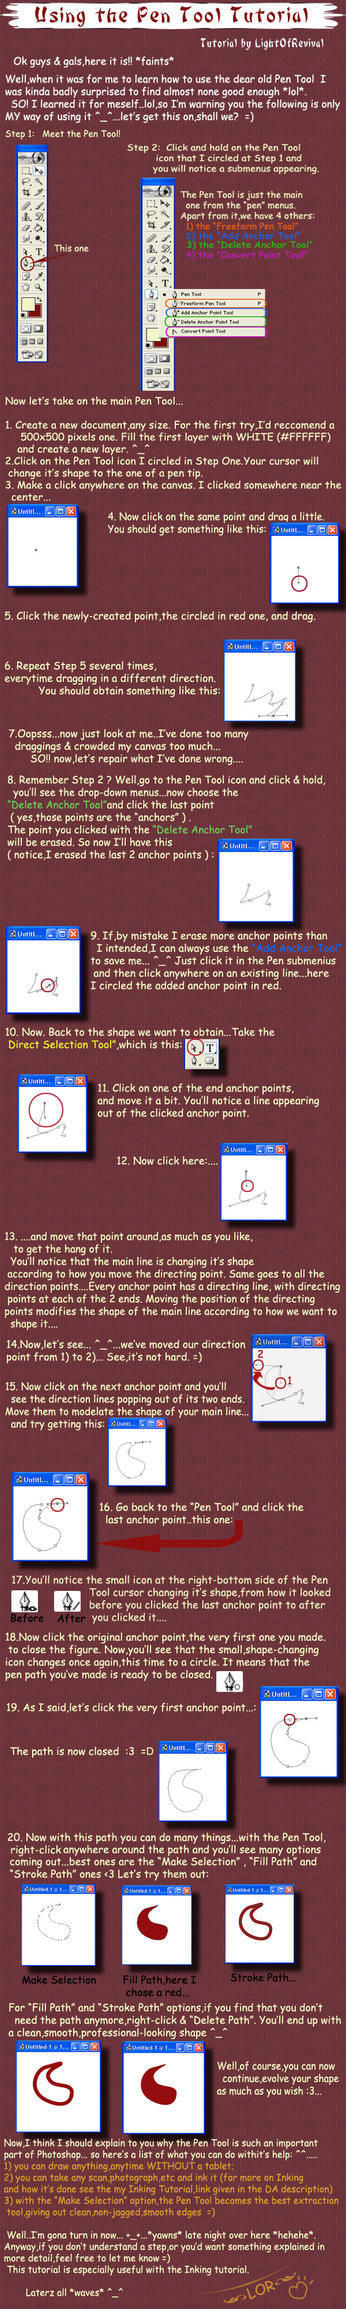 Using the Pen Tool Tutorial. by LightOfRevival